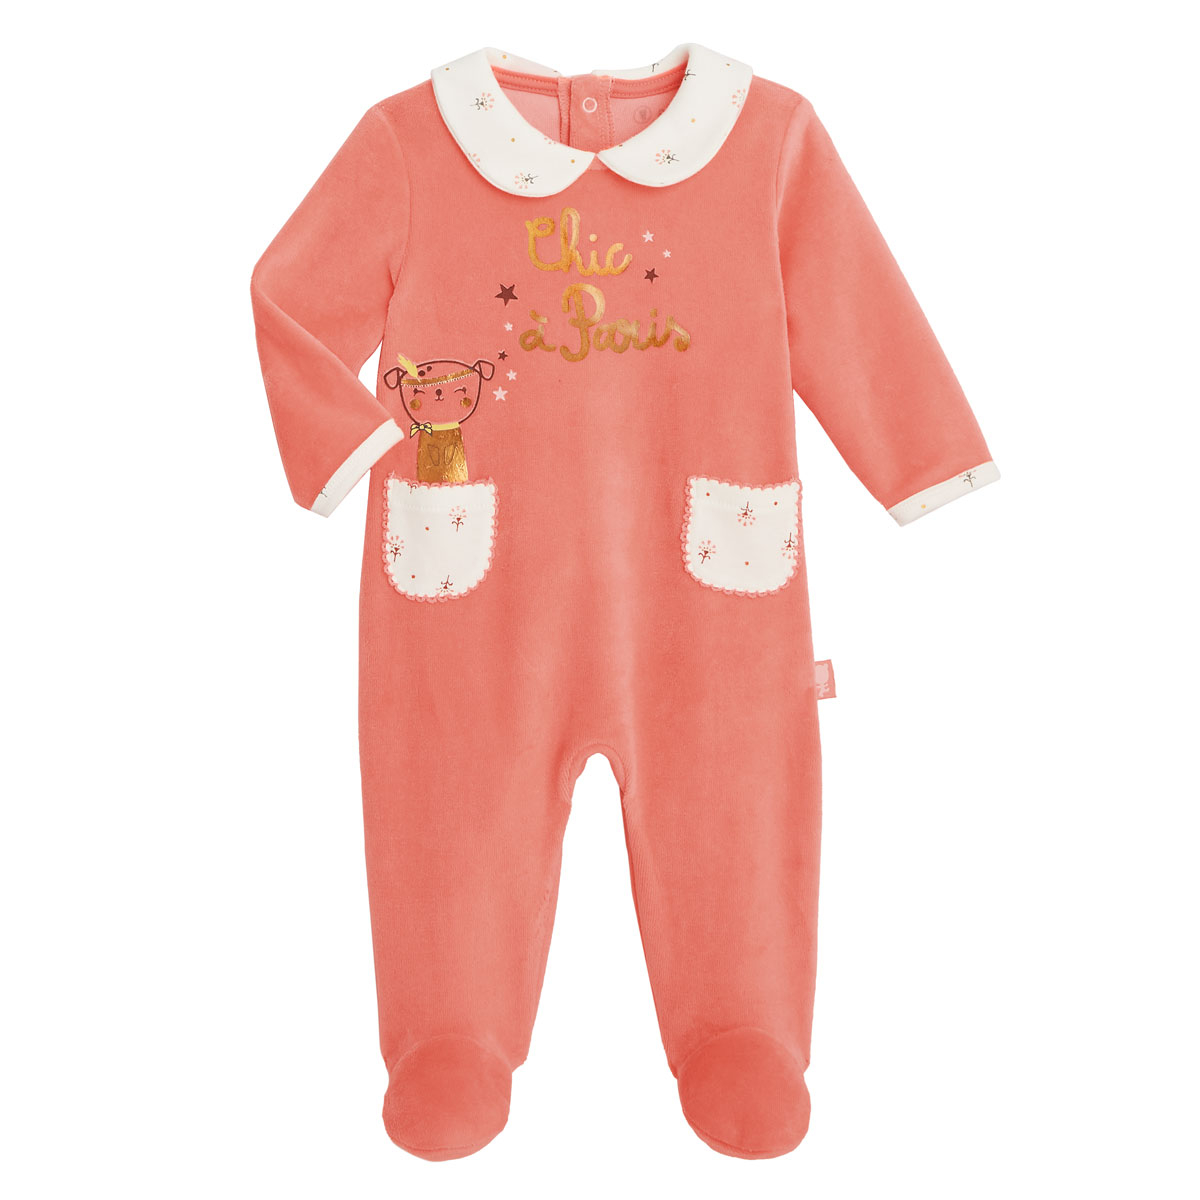 Pyjama bébé velours Chic à Paris